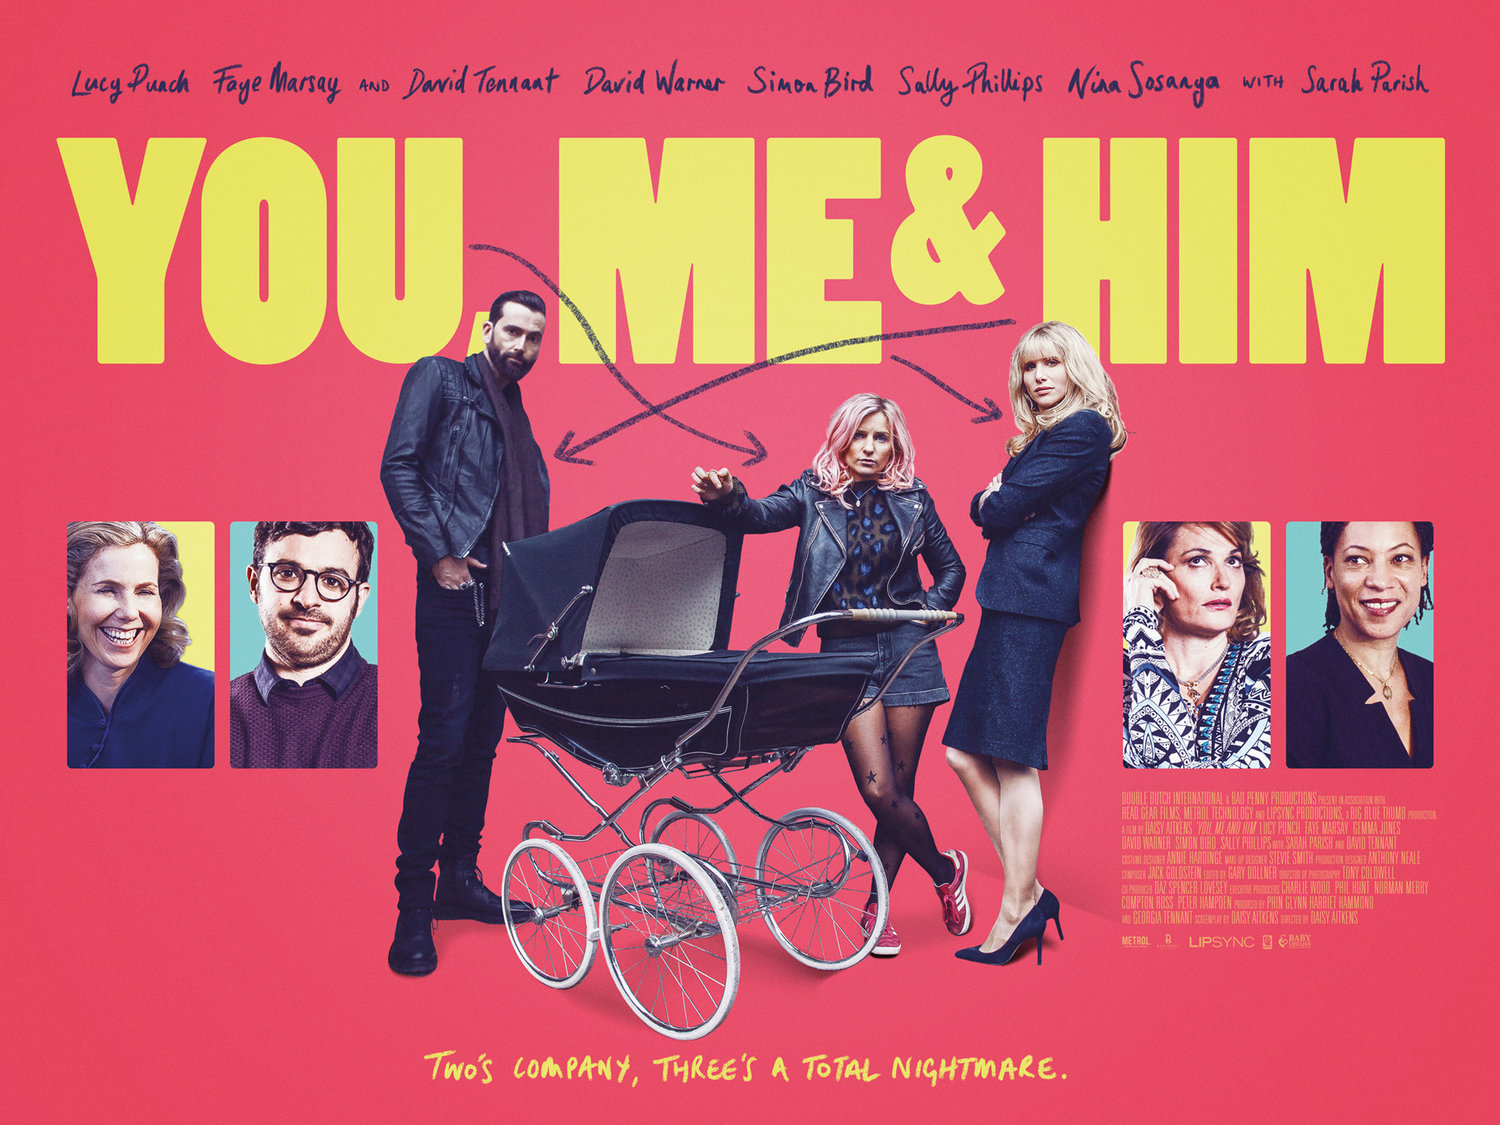 UK: New David Tennant Movie, You, Me And Him Released Today